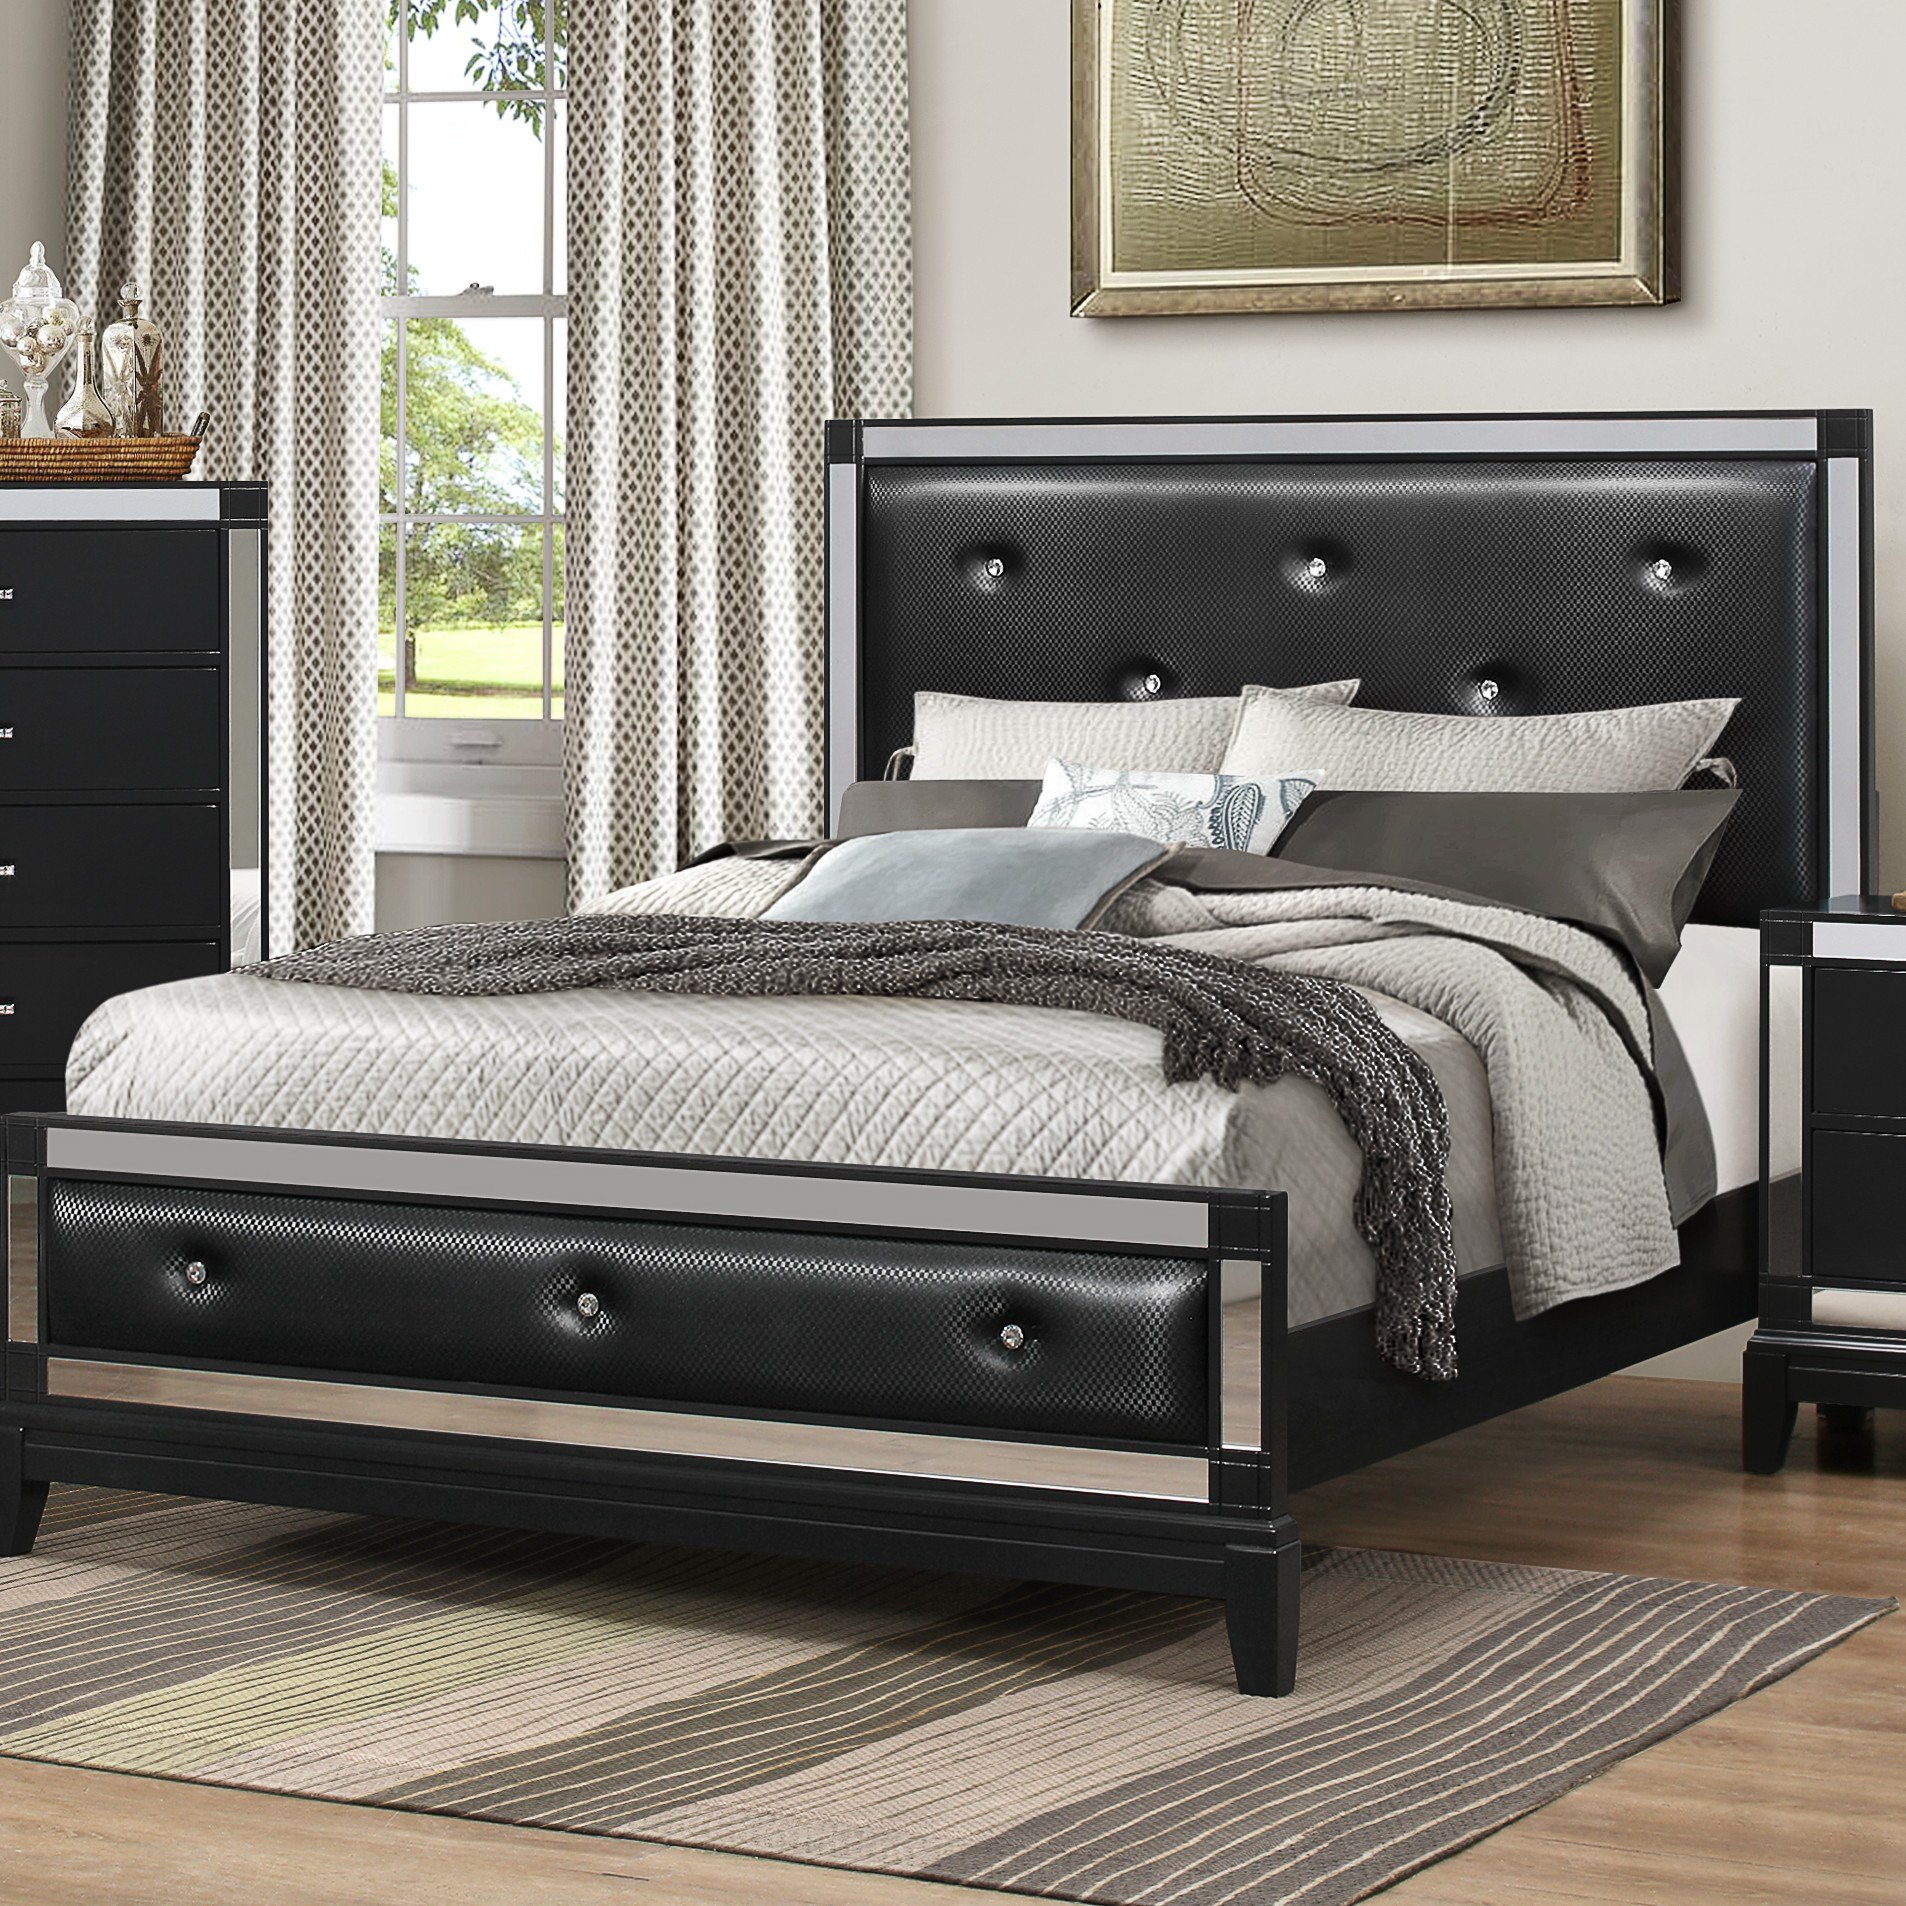 Best House Of Hampton Simmons Casegoods Panel Customizable Bedroom Set Reviews Wayfair With Pictures